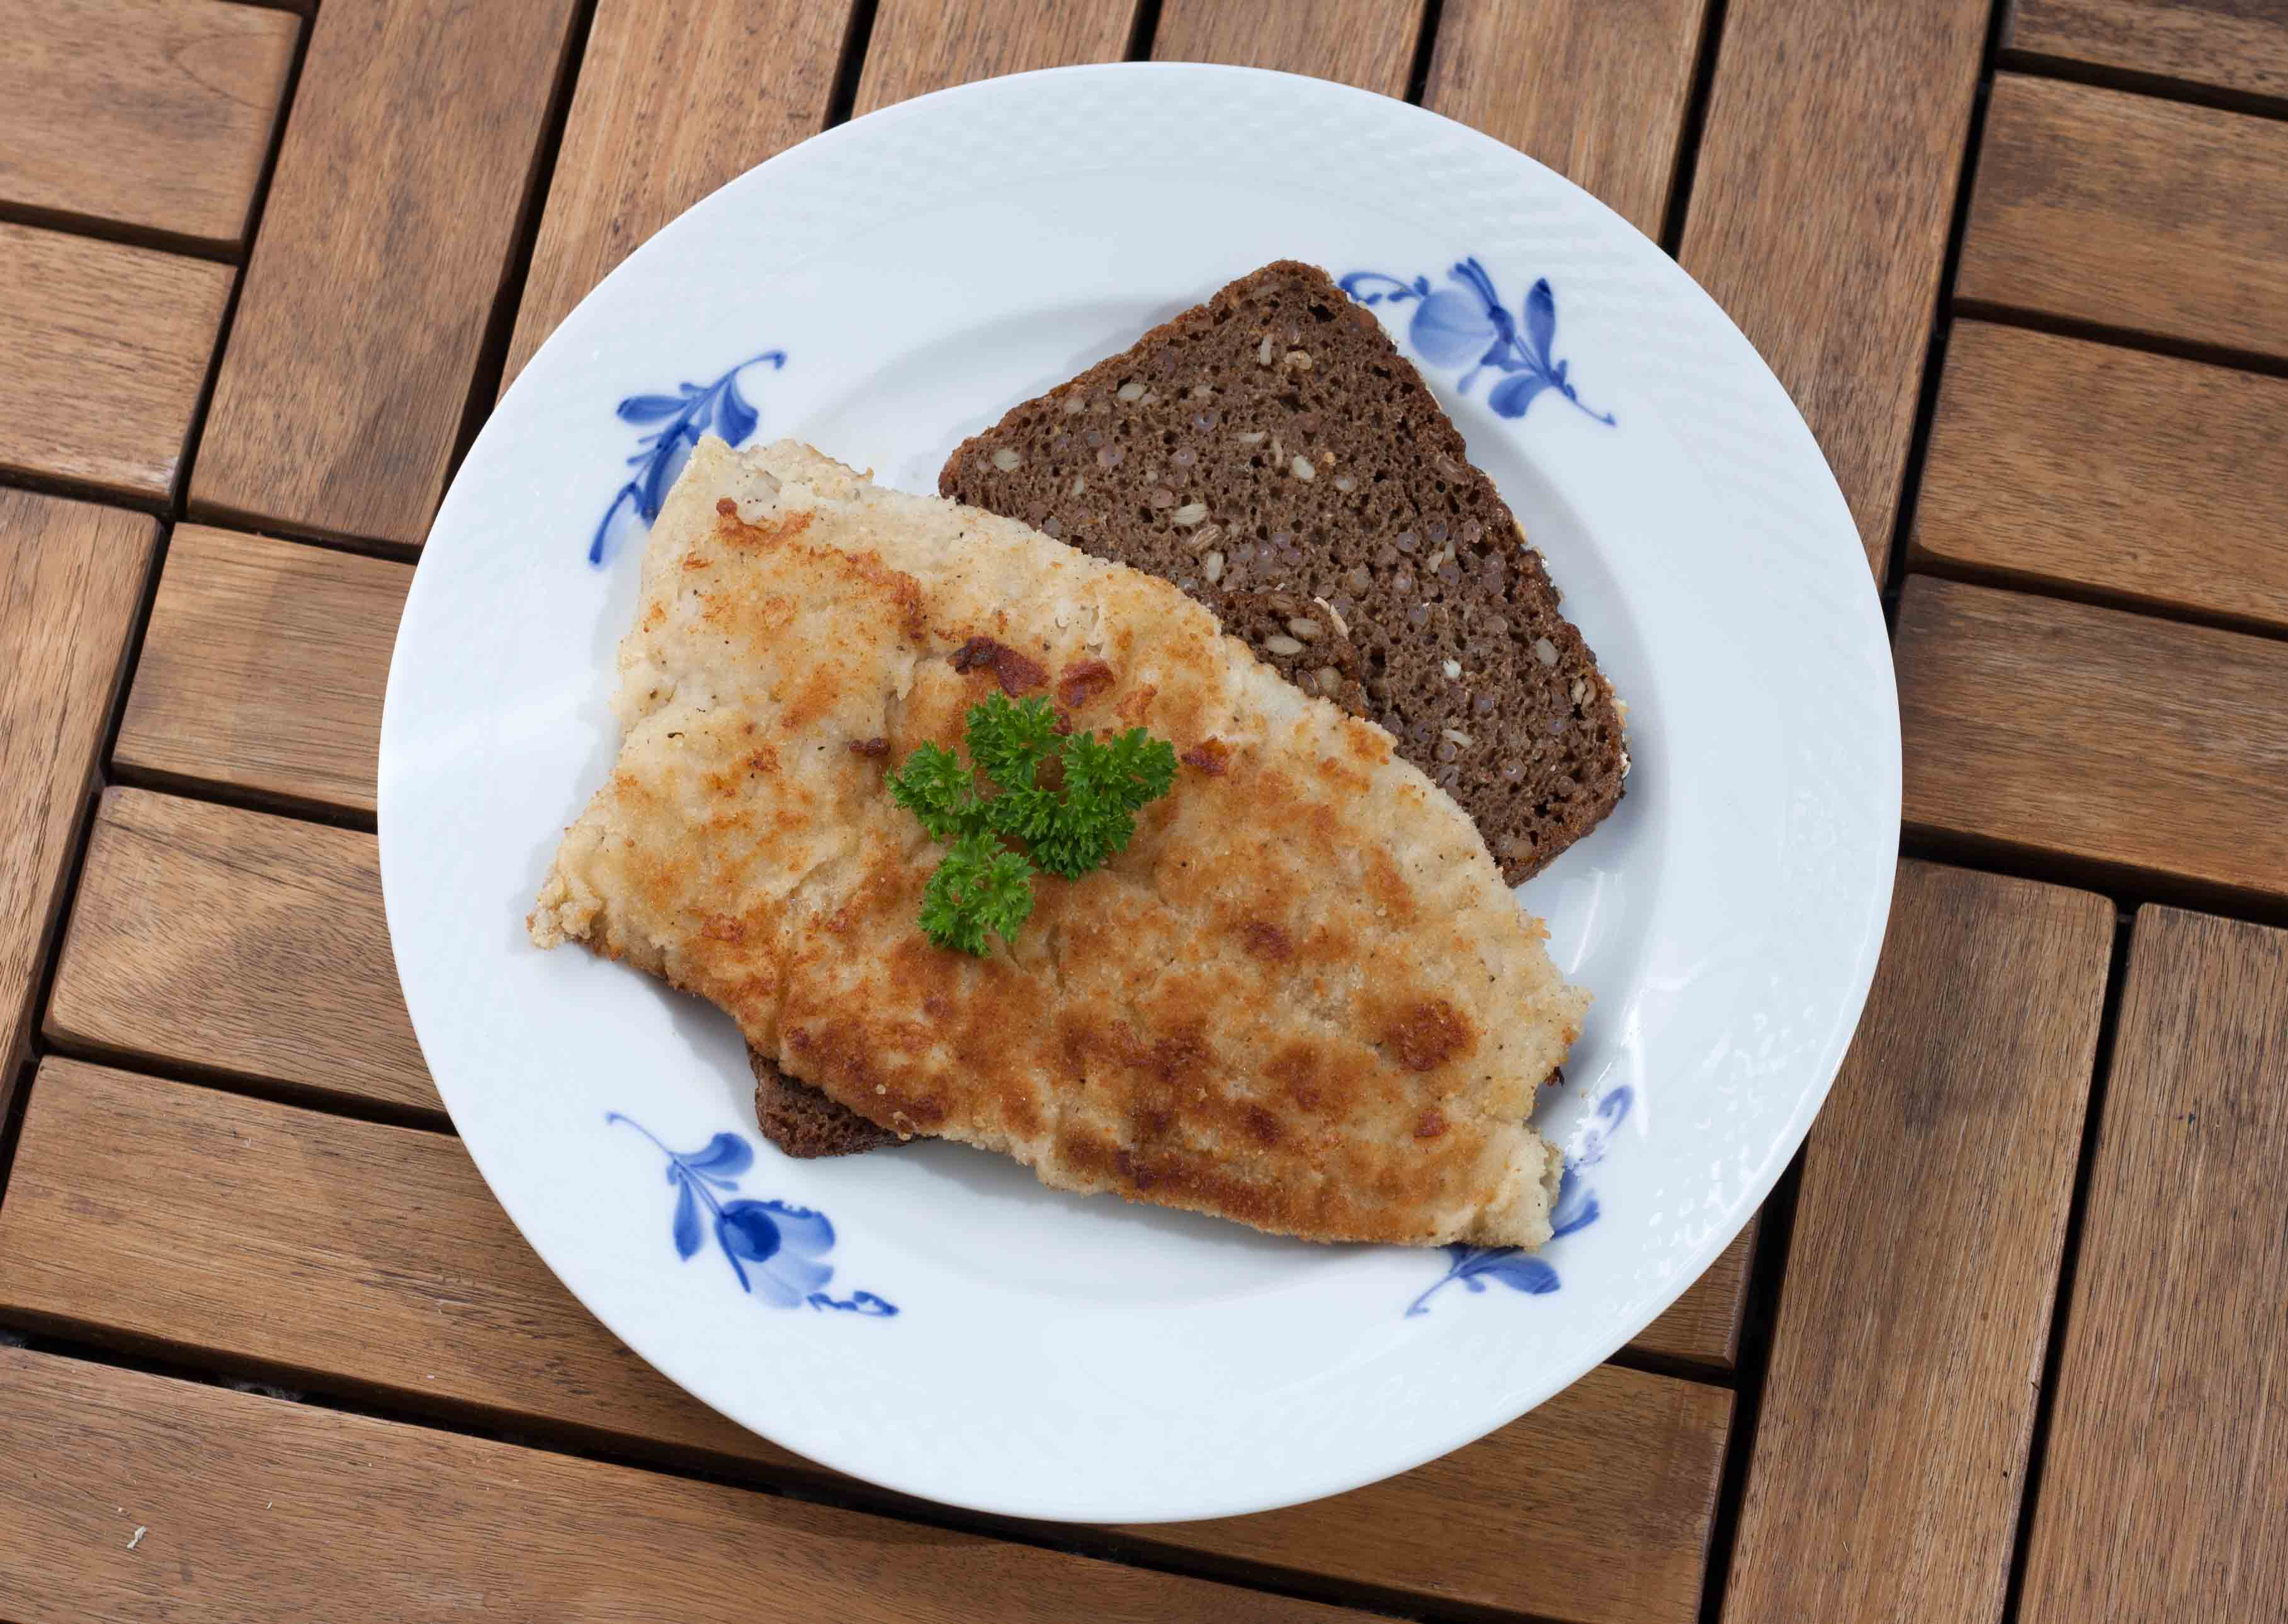 Recipe for Homemade Pan-Fried Coalfish with Rye Bread